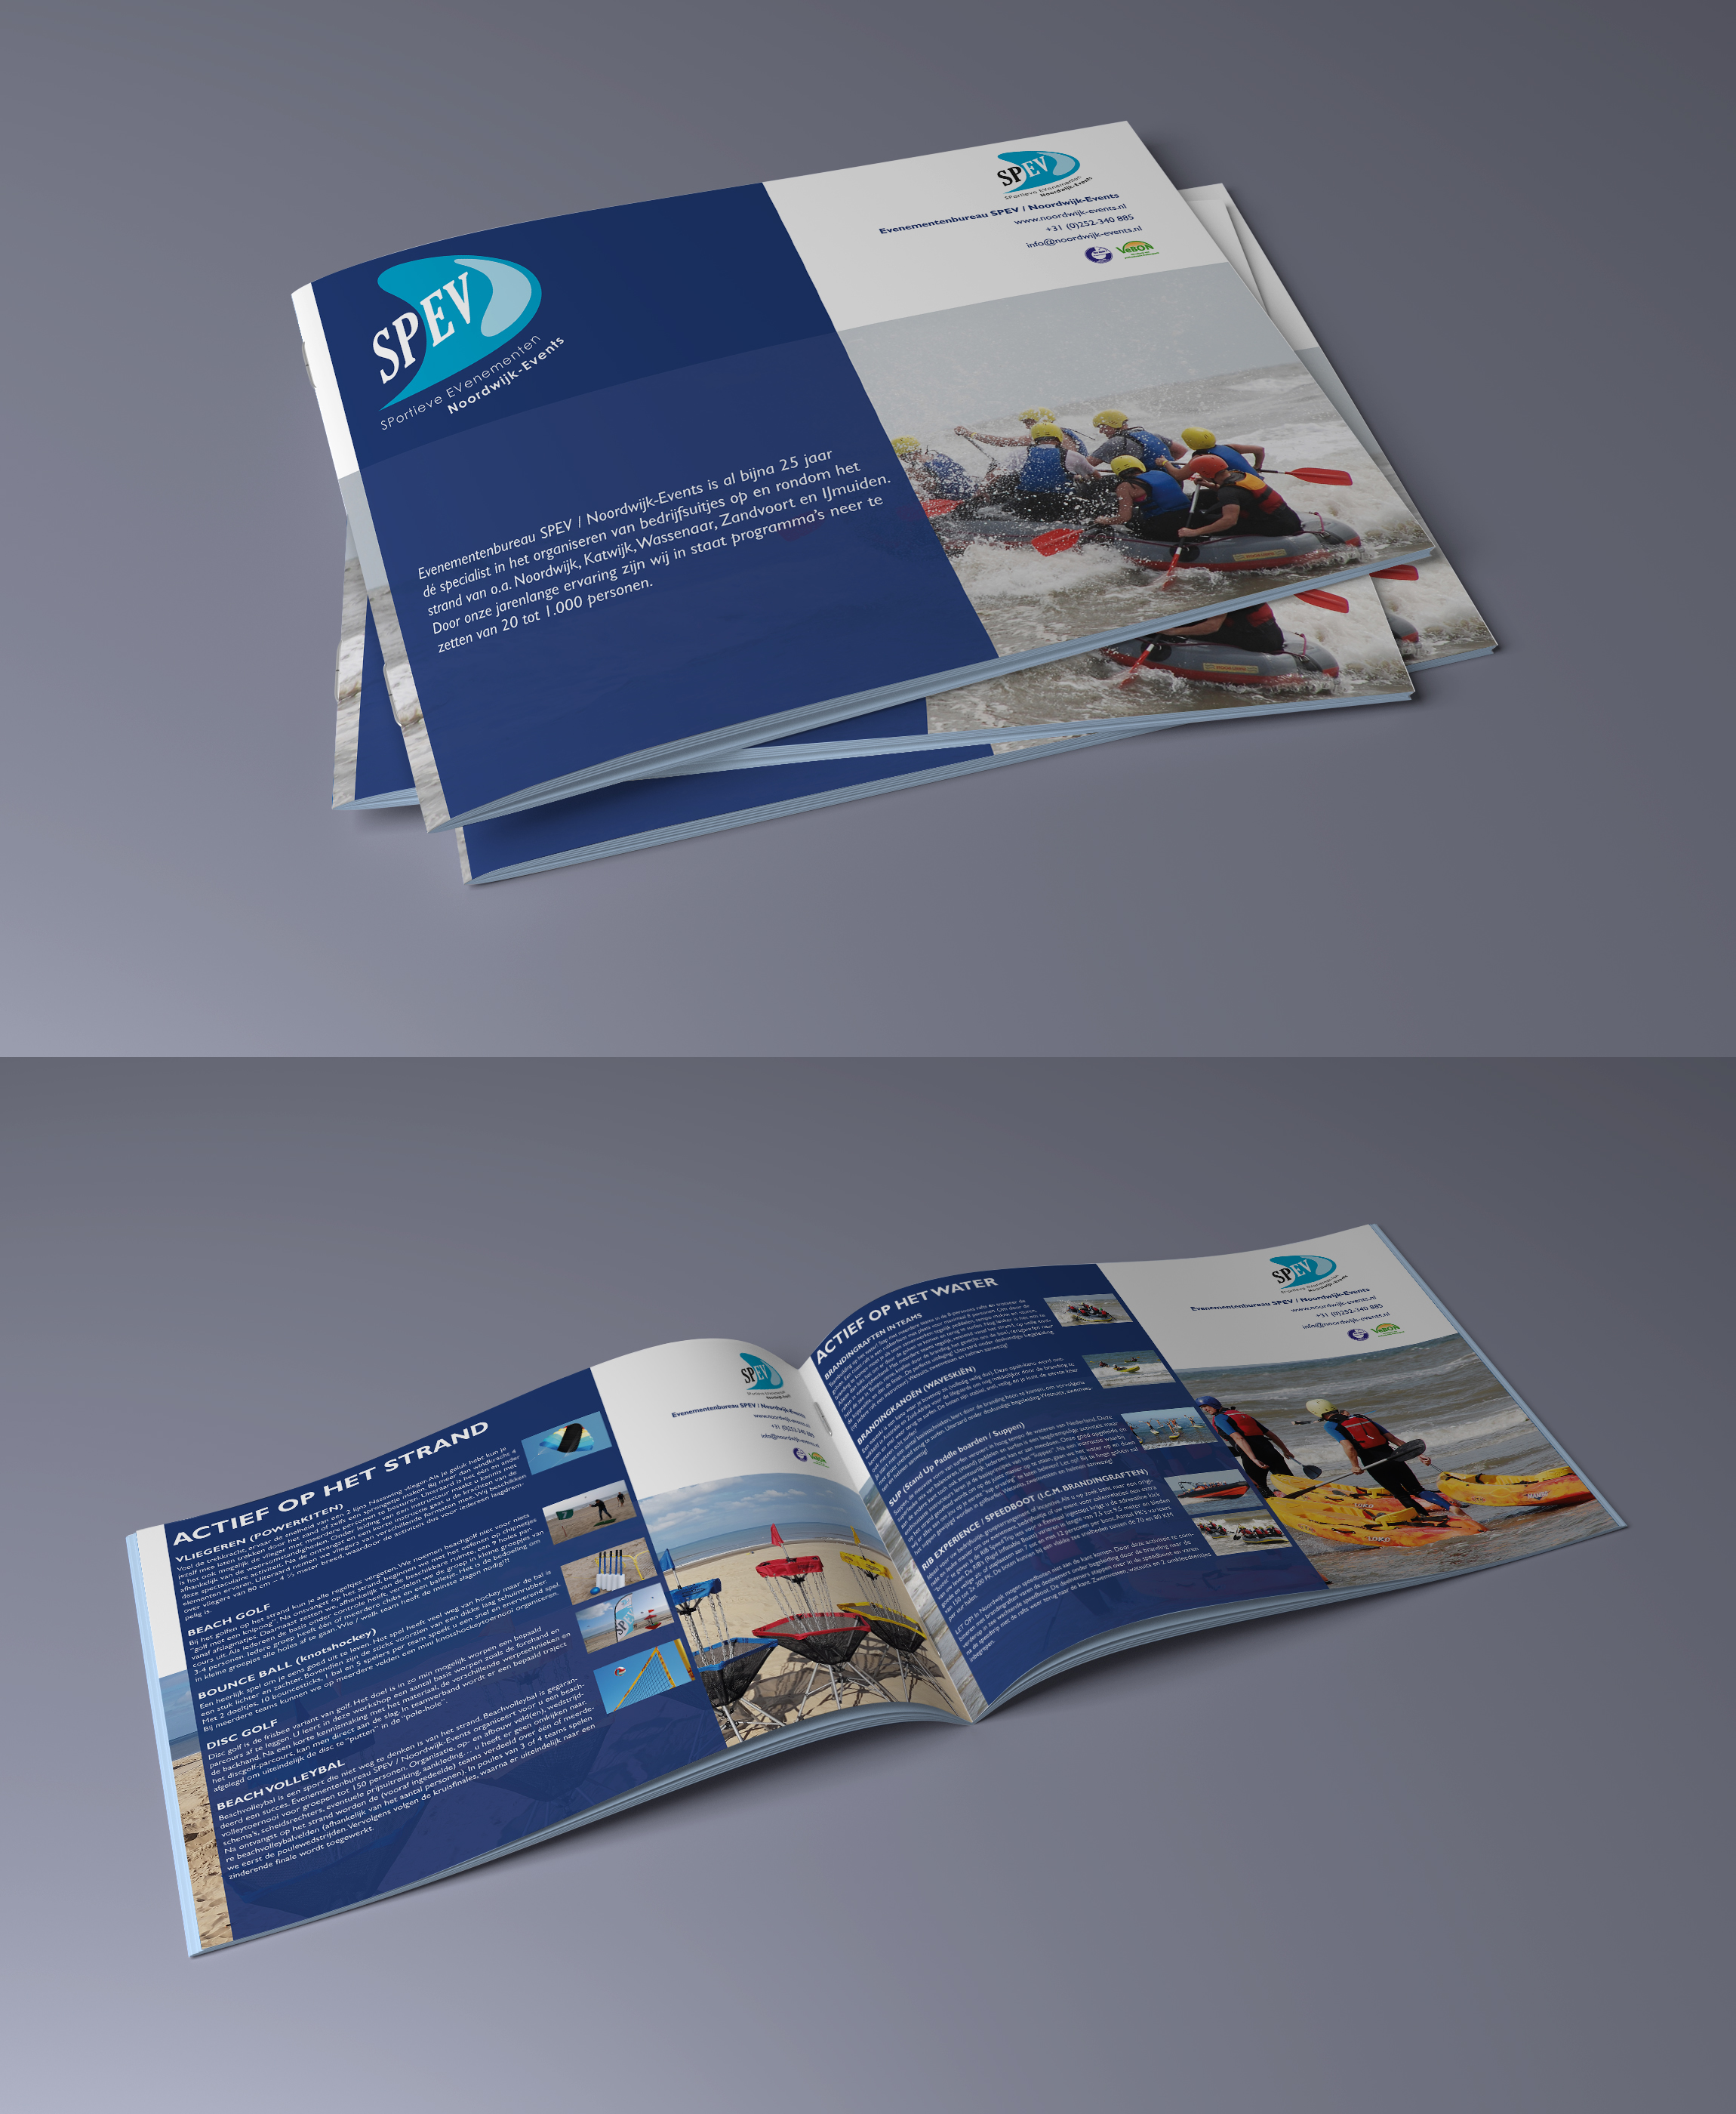 (digitale) brochure SPEV